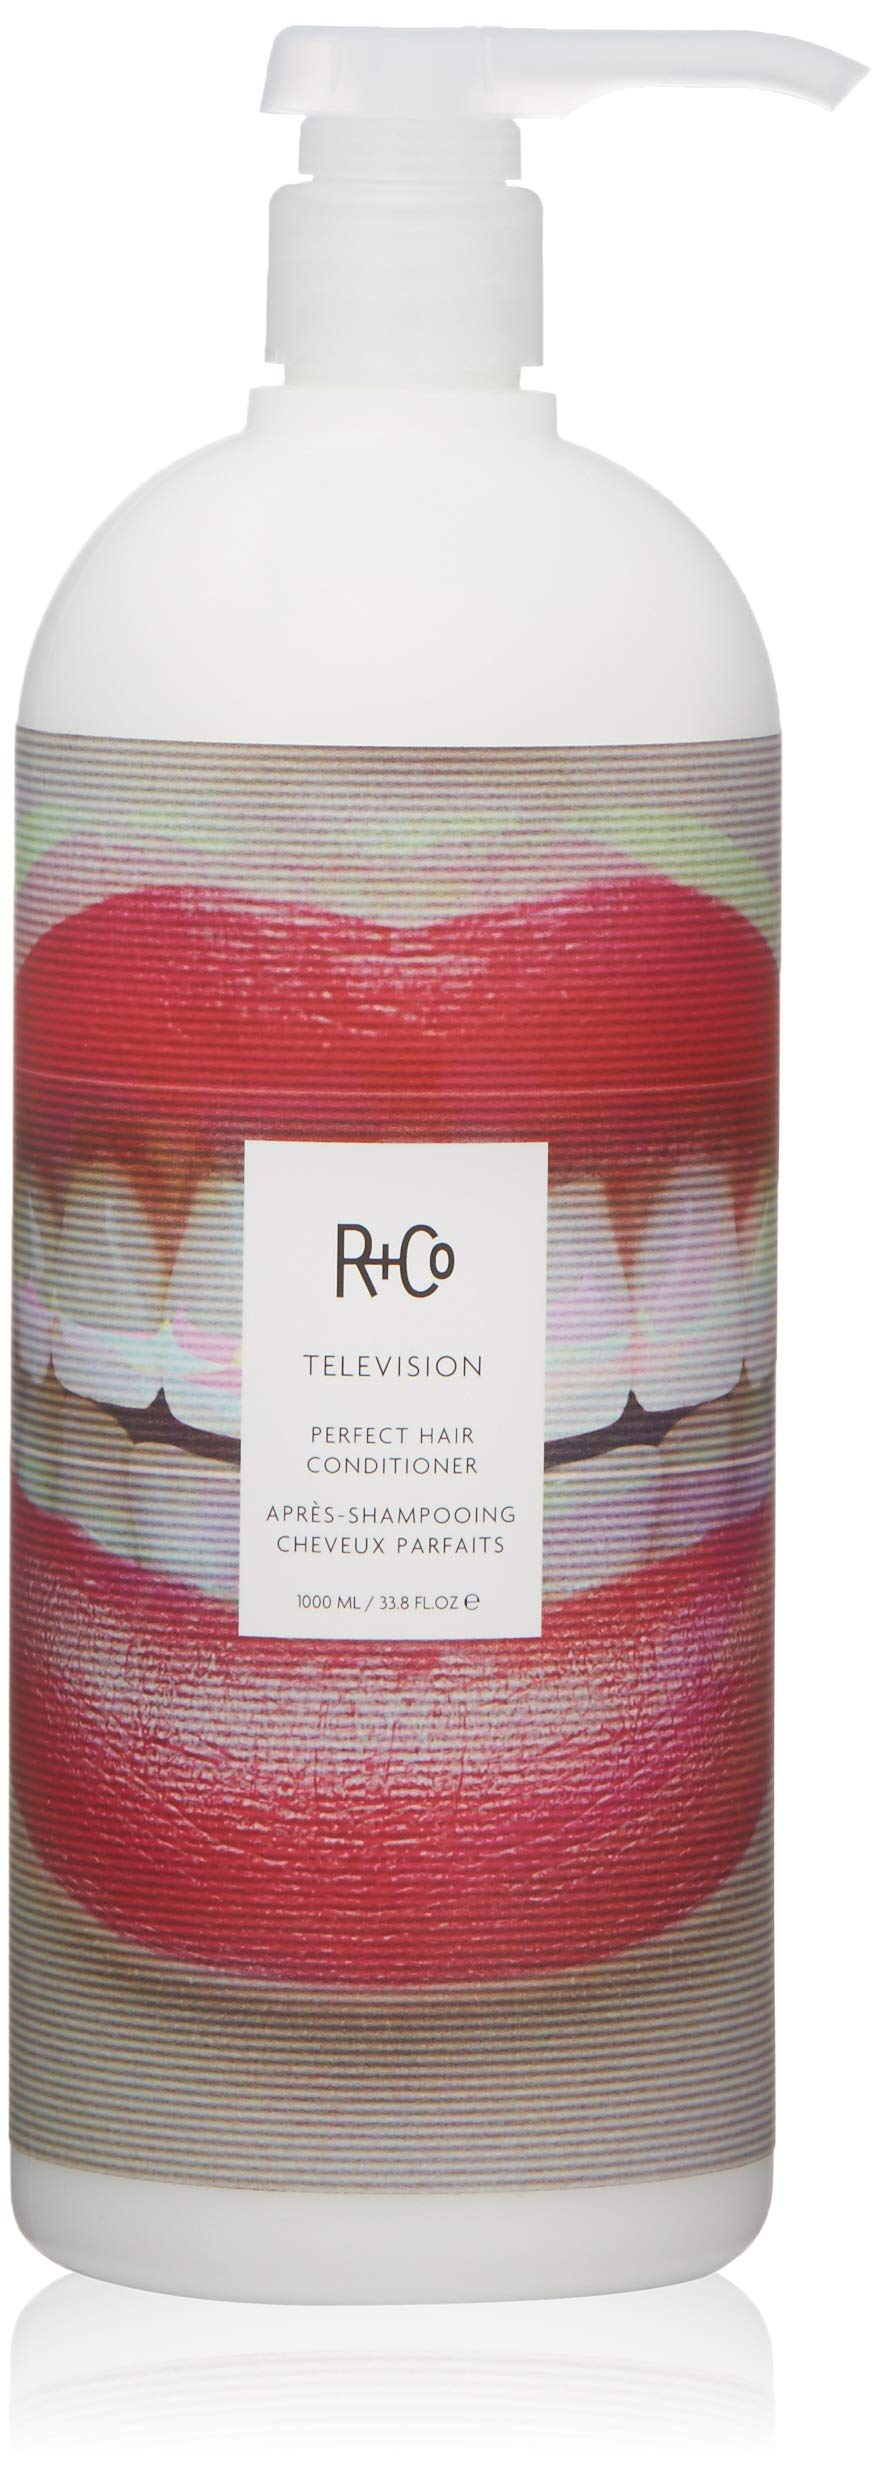 R+Co Television Perfect Hair Conditioner Liter, 33.8 Fl Oz